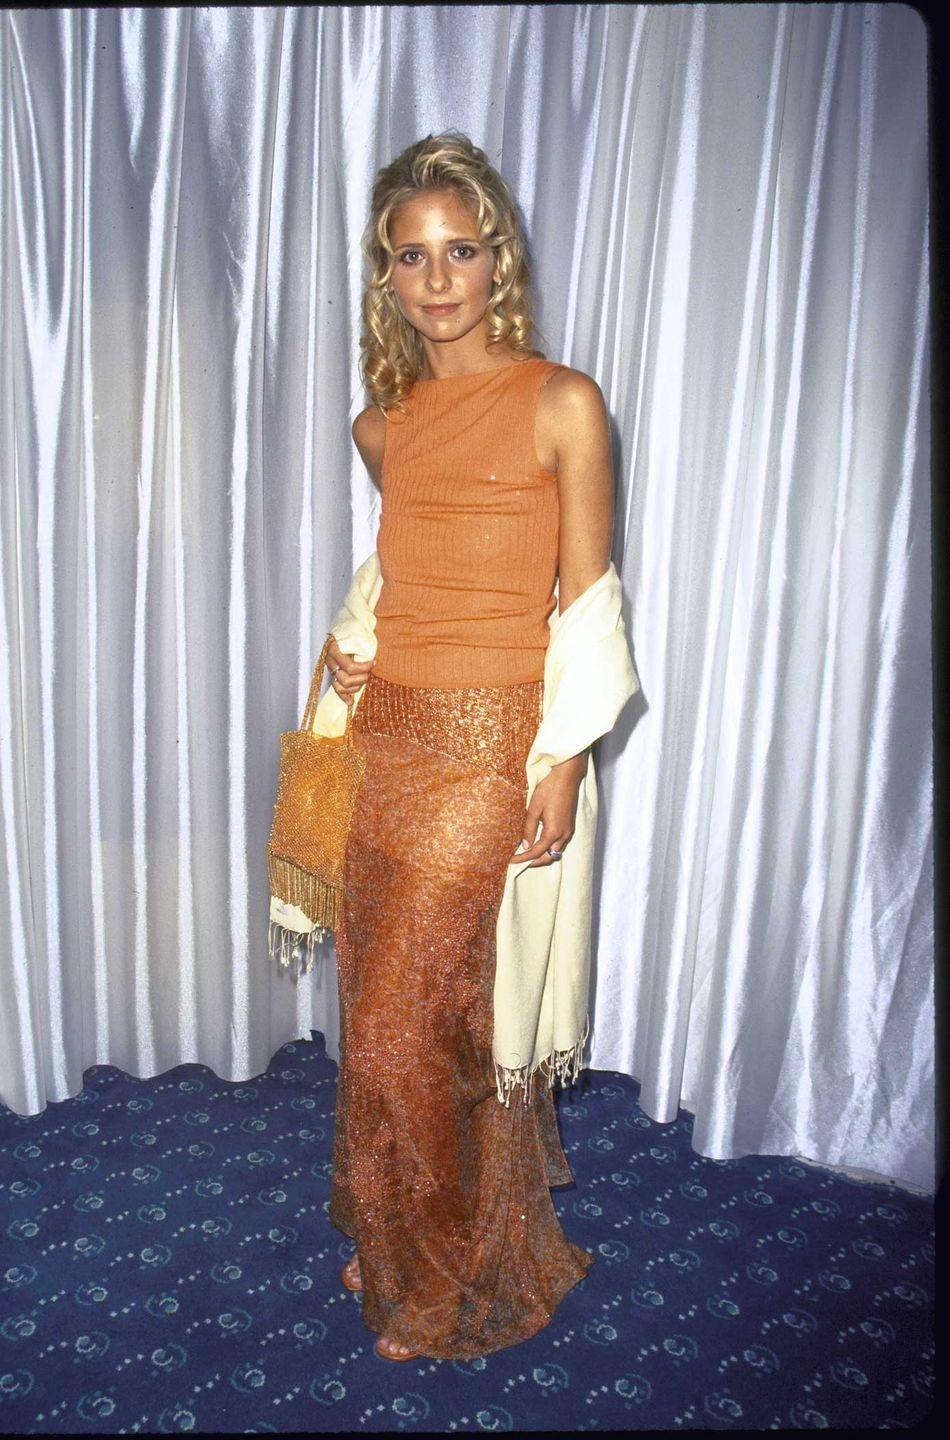 <p>A young Sarah Michelle Gellar exudes a '90s look in her orange ensemble, seen here in 1999 at a <em>Saturday Night Live</em> anniversary event. </p>